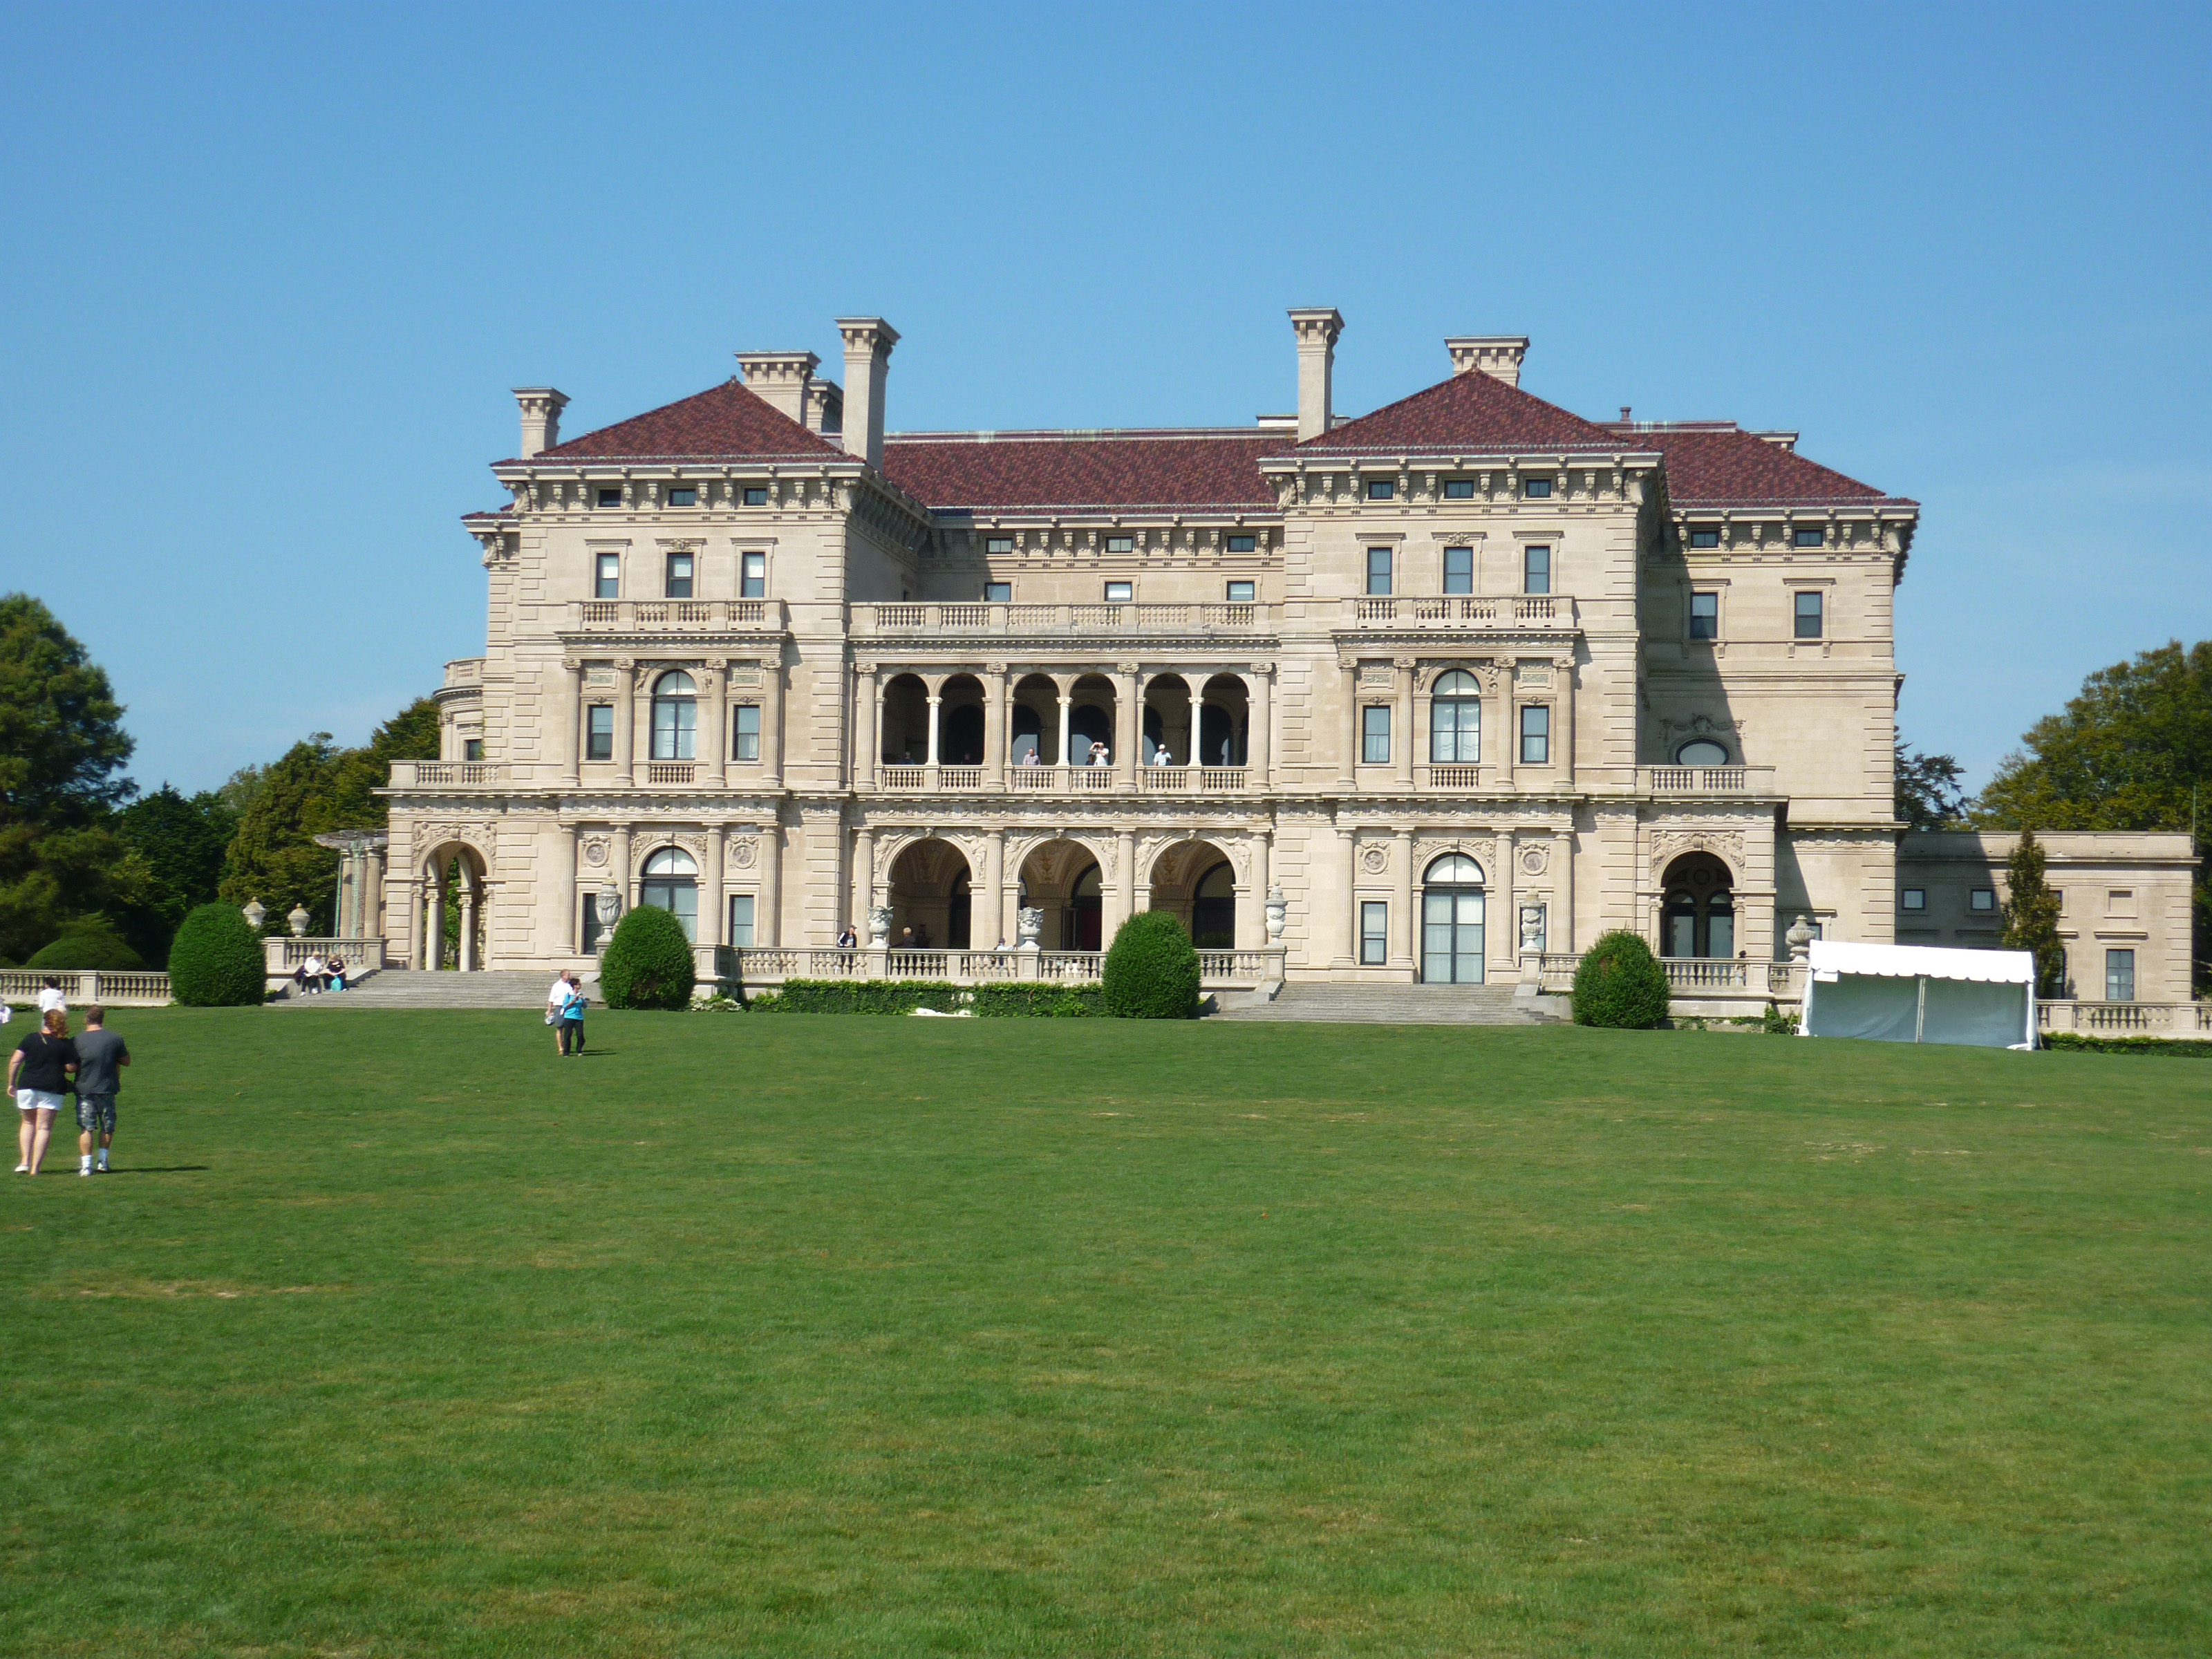 Free Stock Photo 6785 The Breakers Mansion | freeimageslive